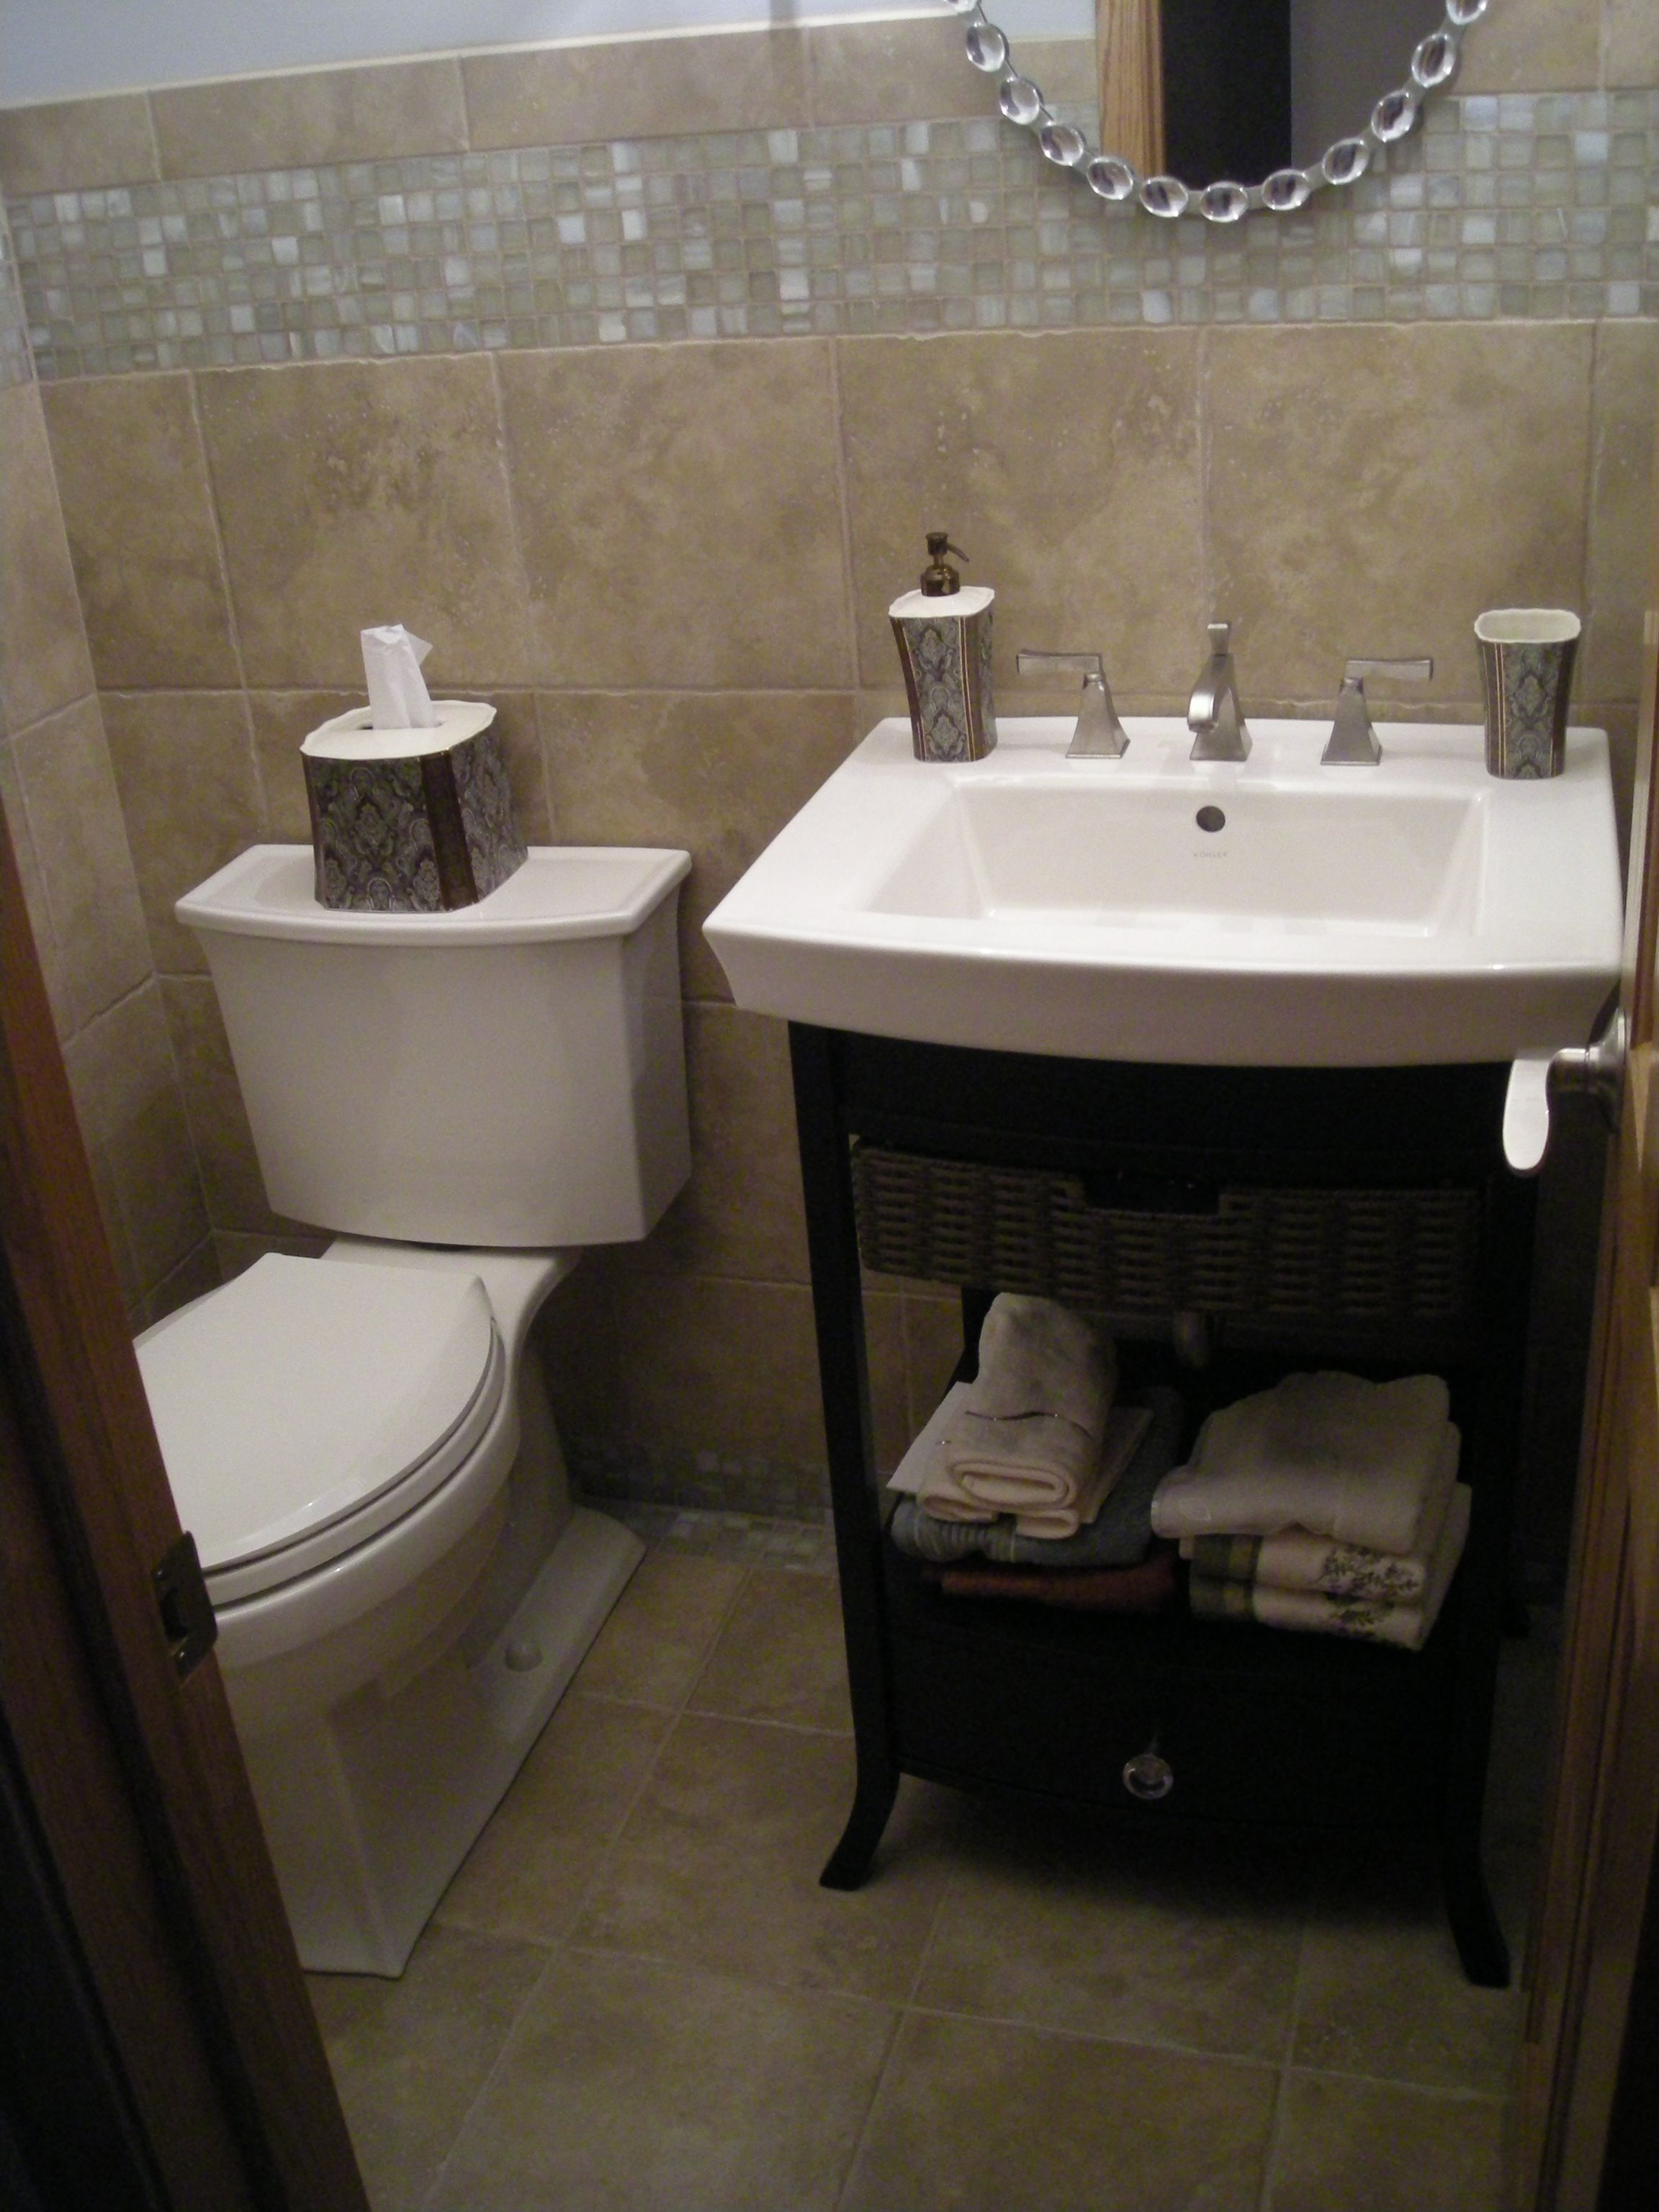 17 Best Images About Half Bath Remodel On Pinterest Toilets Vanities And Tile